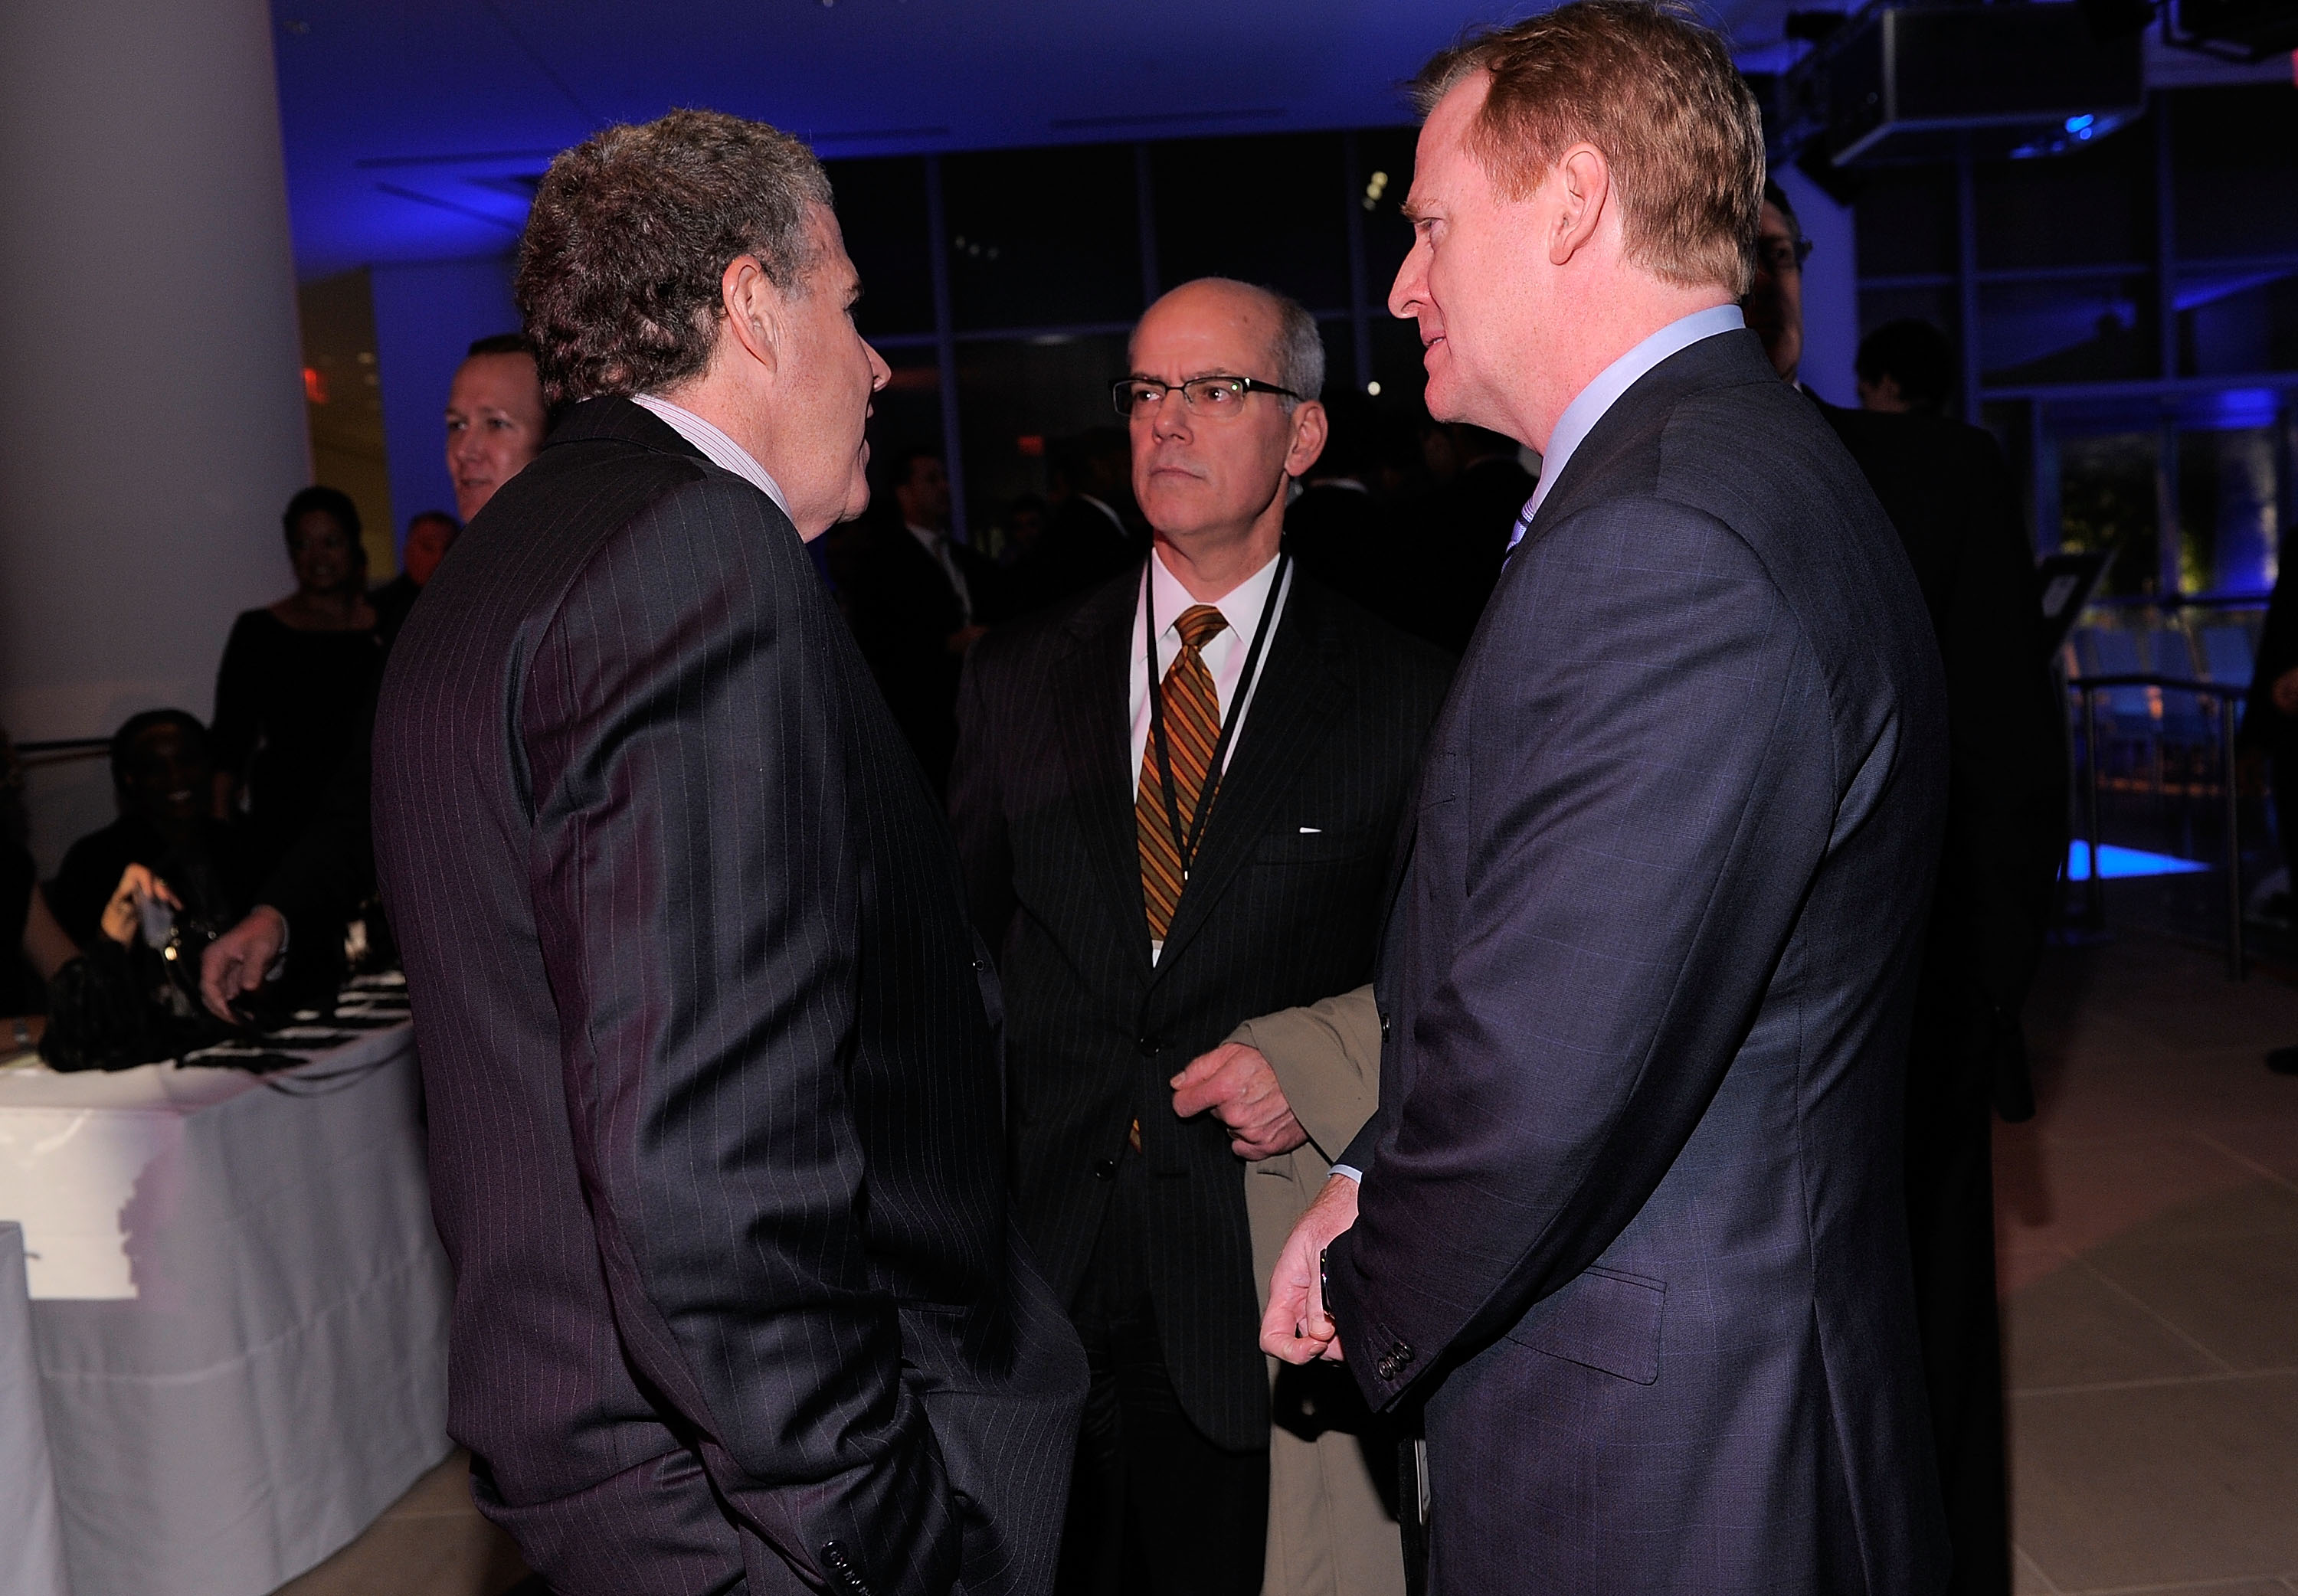 NEW YORK, NY - NOVEMBER 30:  (R) Commissioner of hte NFL Roger Goodell speaks during the 2010 Sports Illustrated Sportsman of the Year Celebration  at IAC Building on November 30, 2010 in New York City.  (Photo by Jemal Countess/Getty Images)